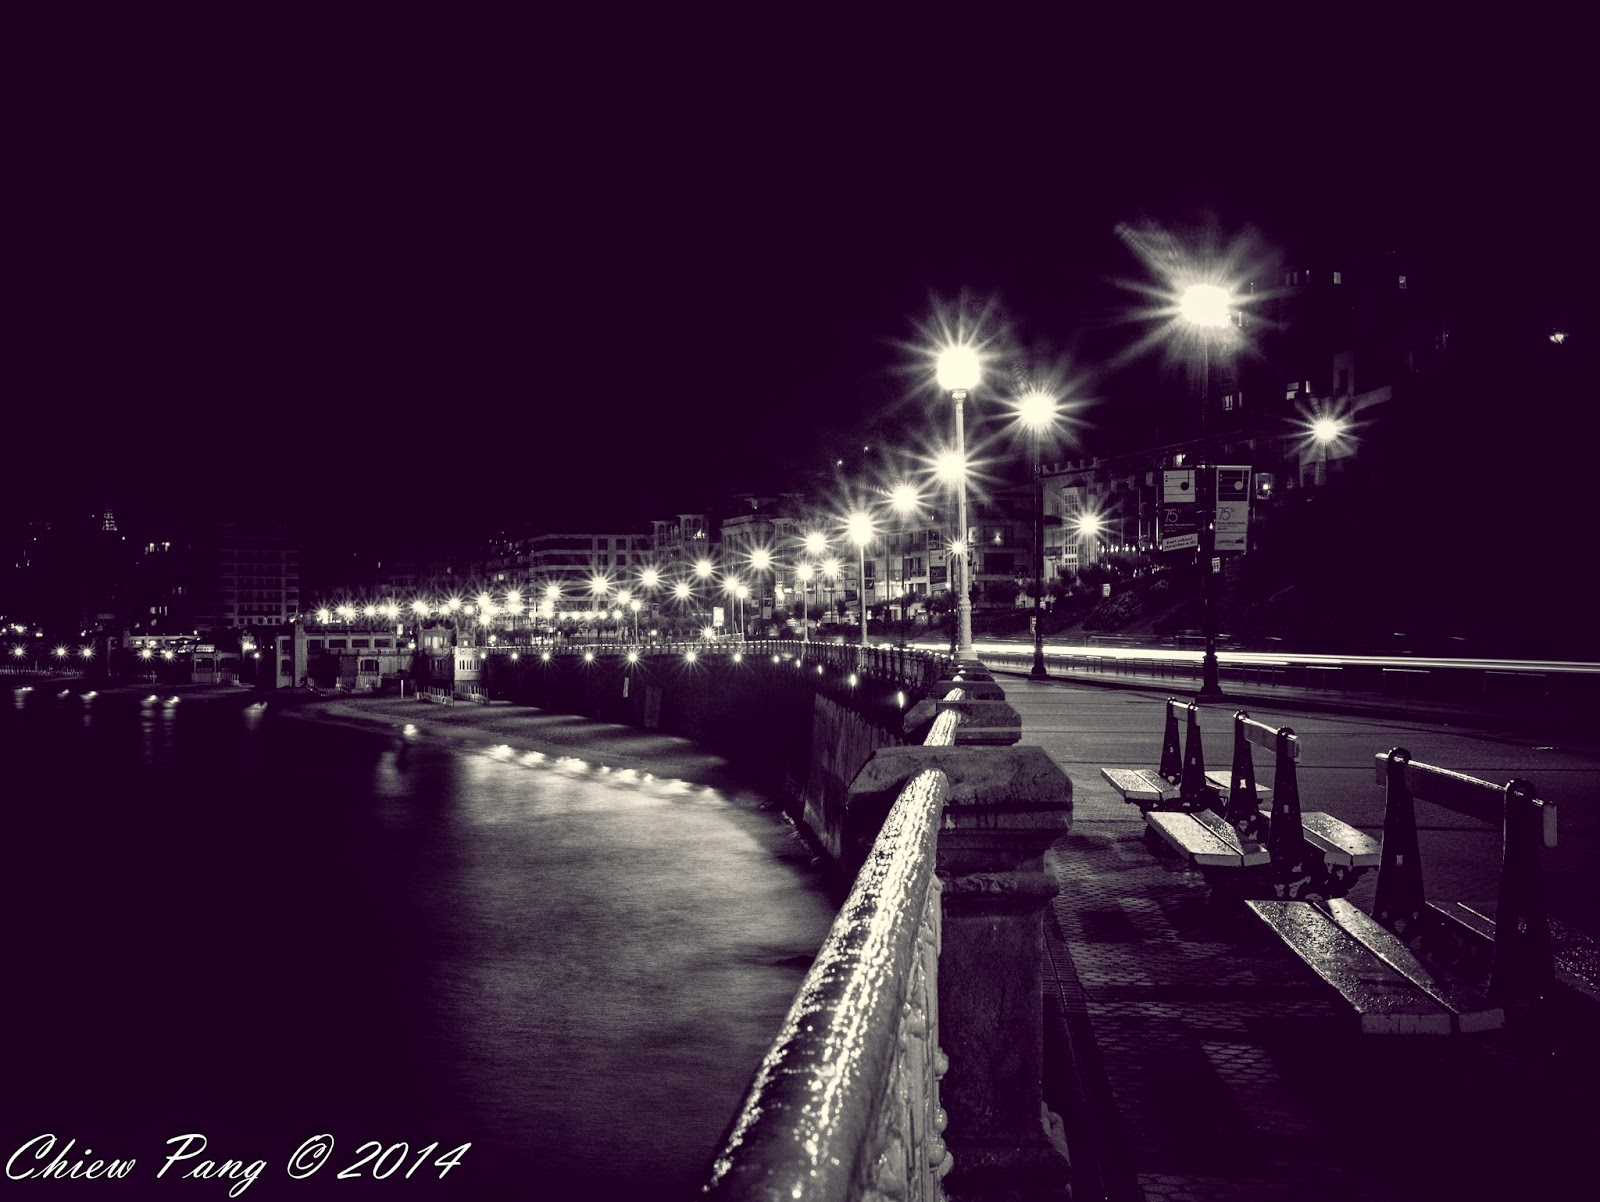 La Concha Promenade in the night, San Sebastian